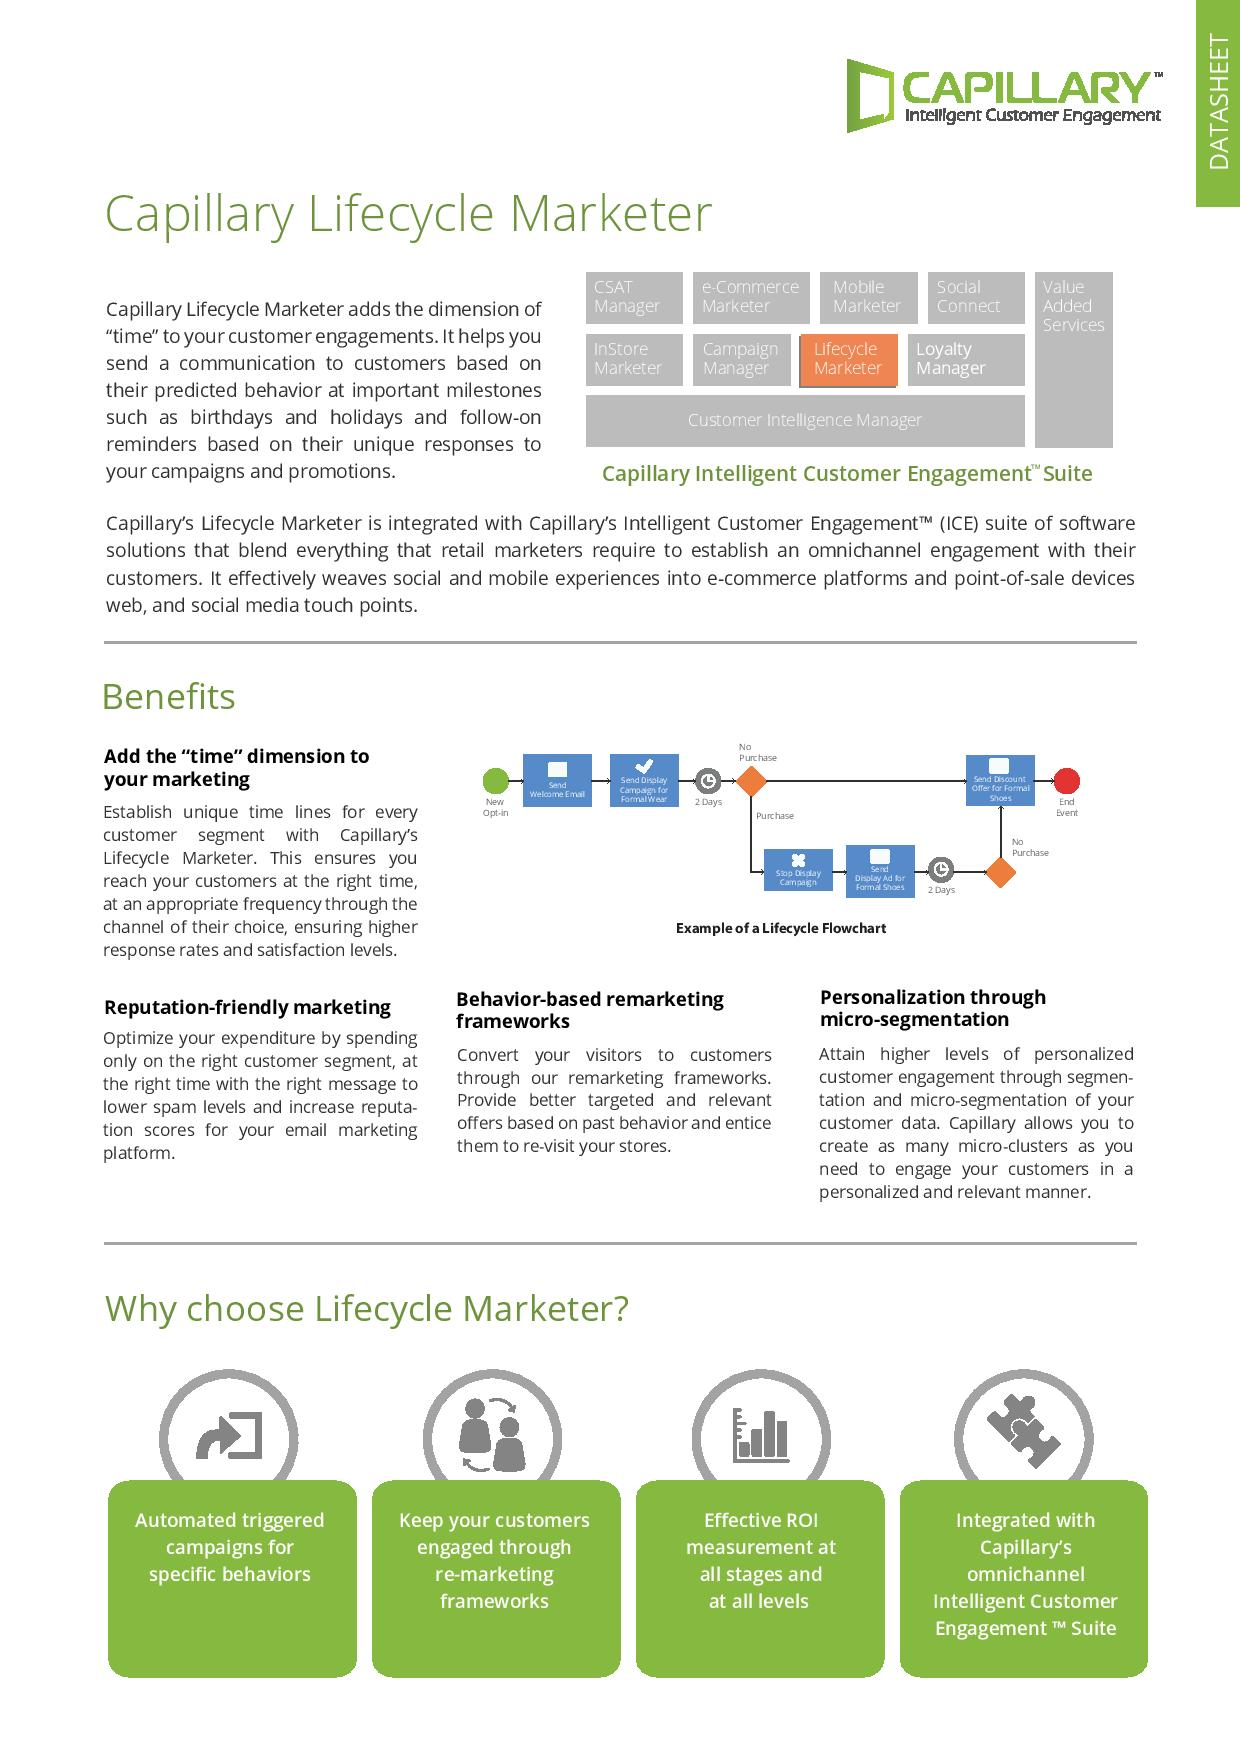 capillary_datasheet_lifecycle-marketer-page-001